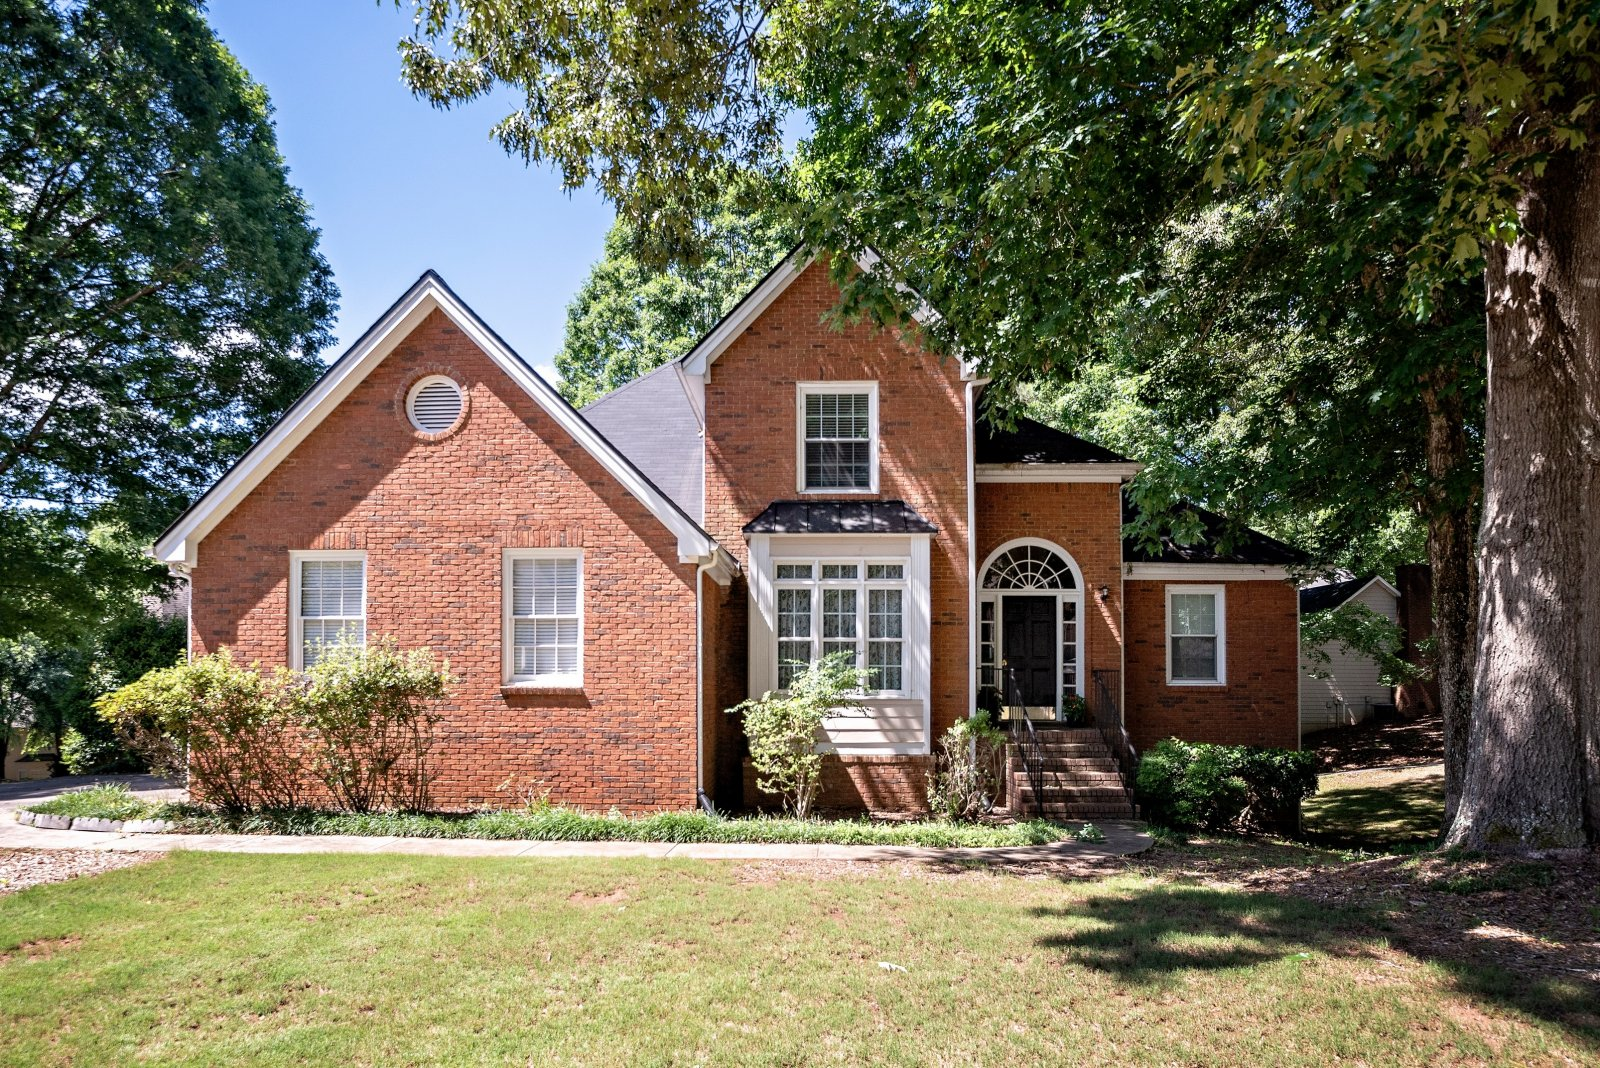 Townsend Realty Group | Sell your home in woodstock